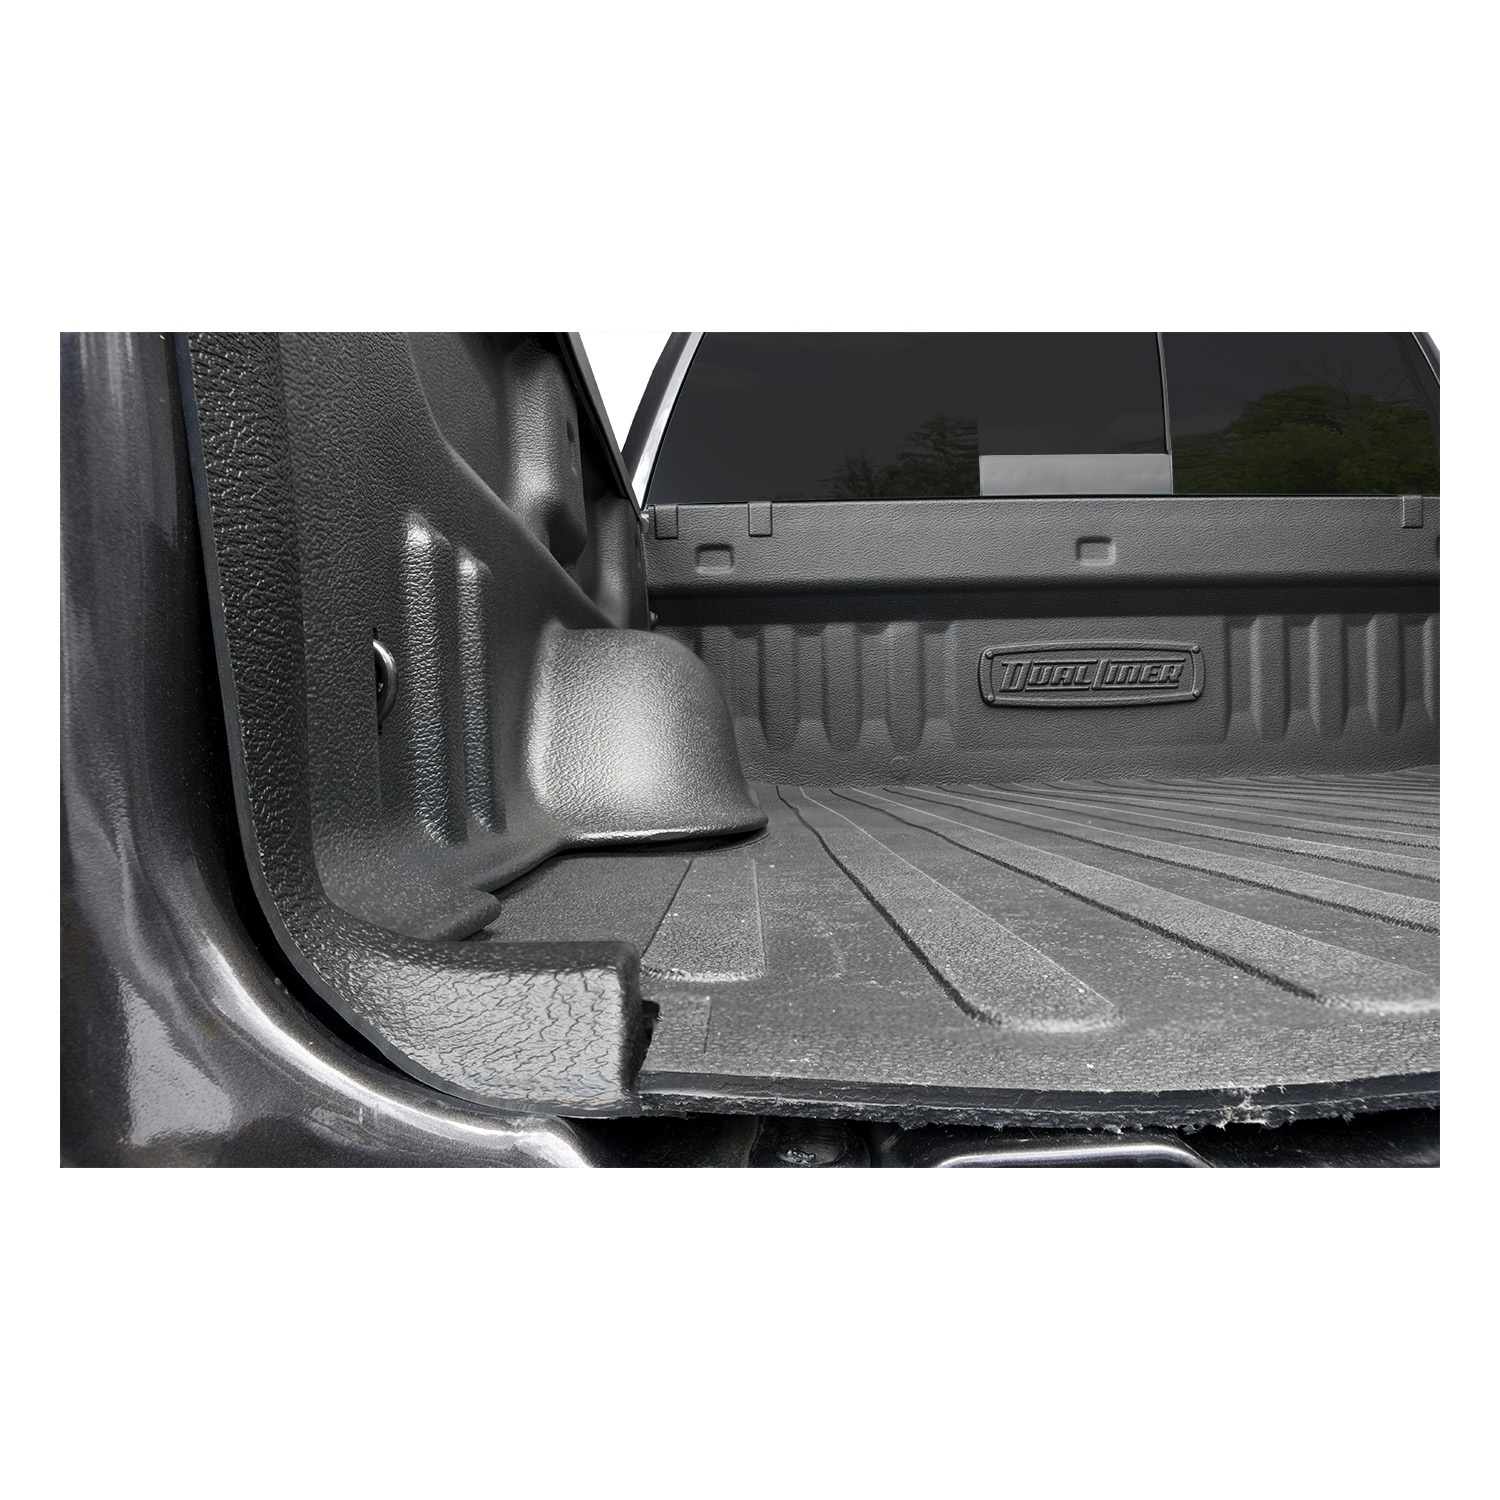 2014 to 2020 Chevy Silverado 1500 Bed Liner for Sale 6' 6 ...